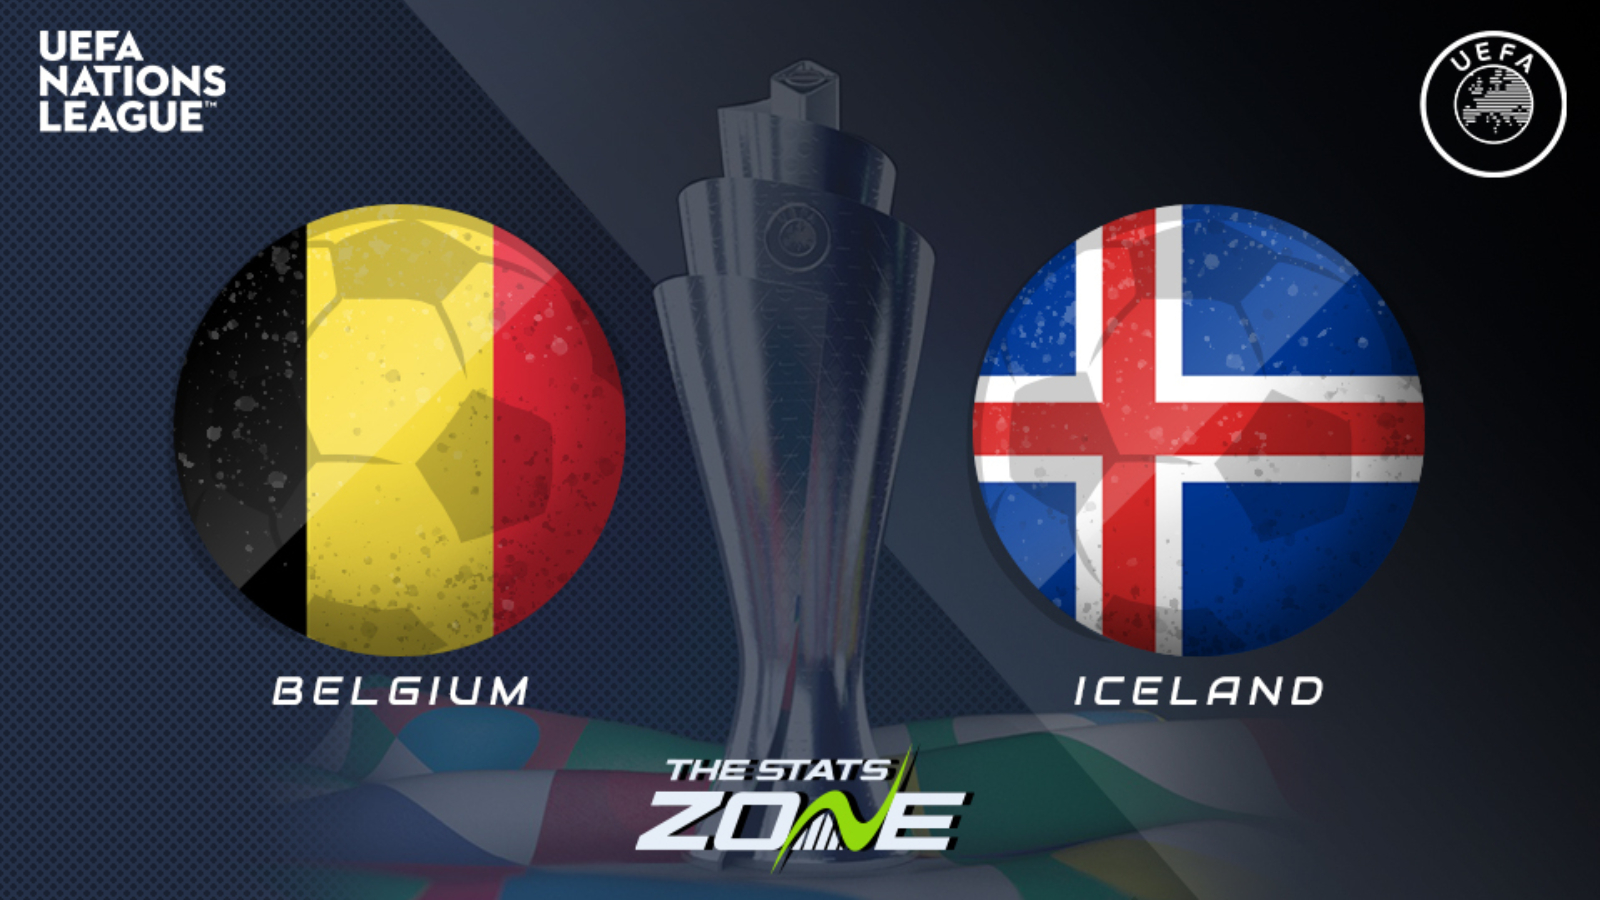 2020 21 Uefa Nations League Belgium Vs Iceland Preview Prediction The Stats Zone